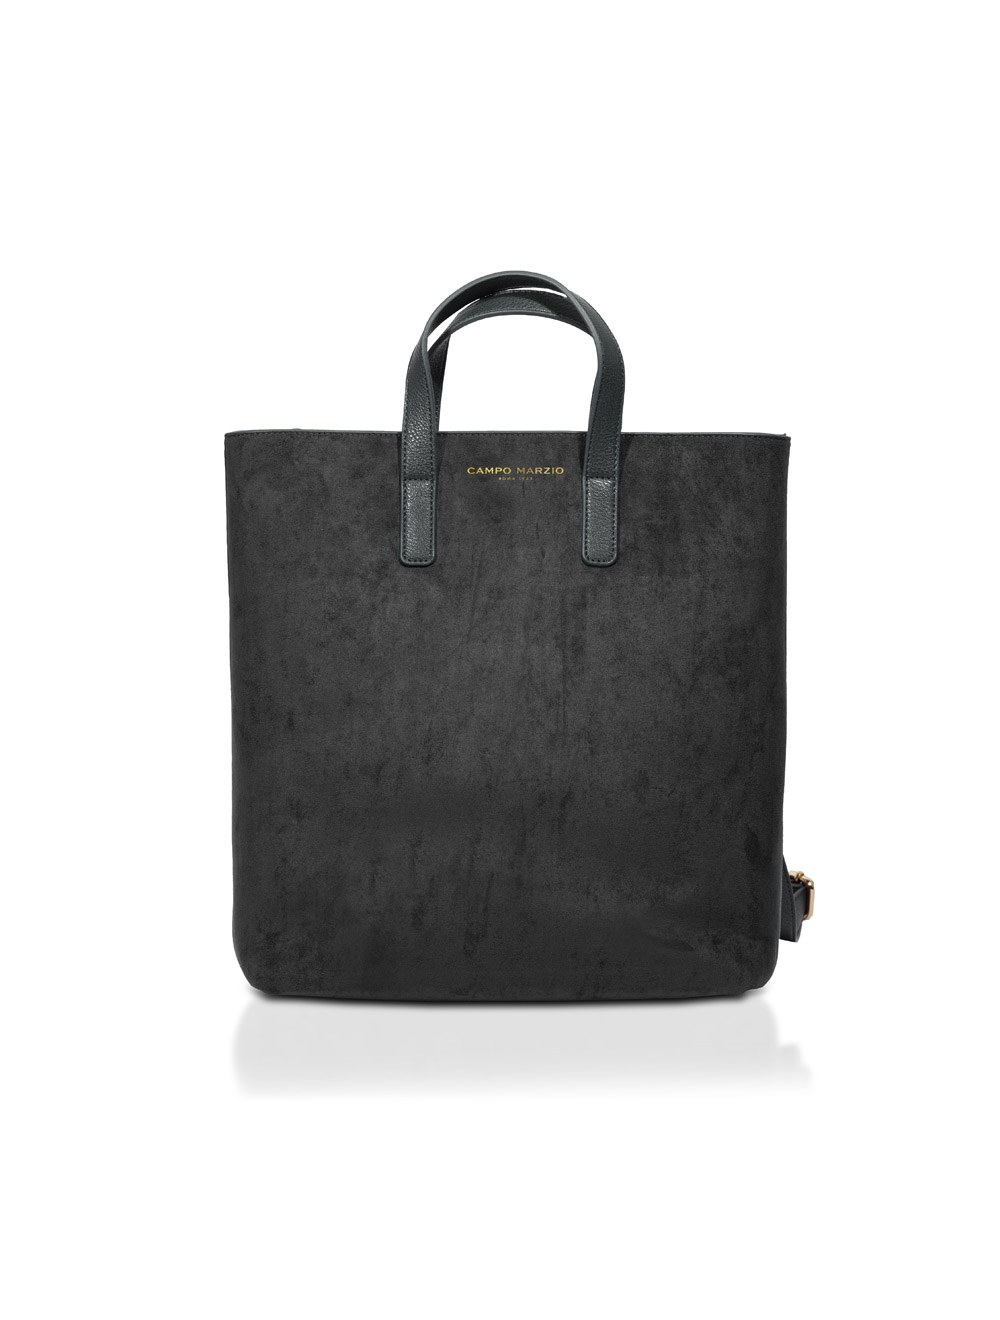 Backpack and Bag Loie - Black